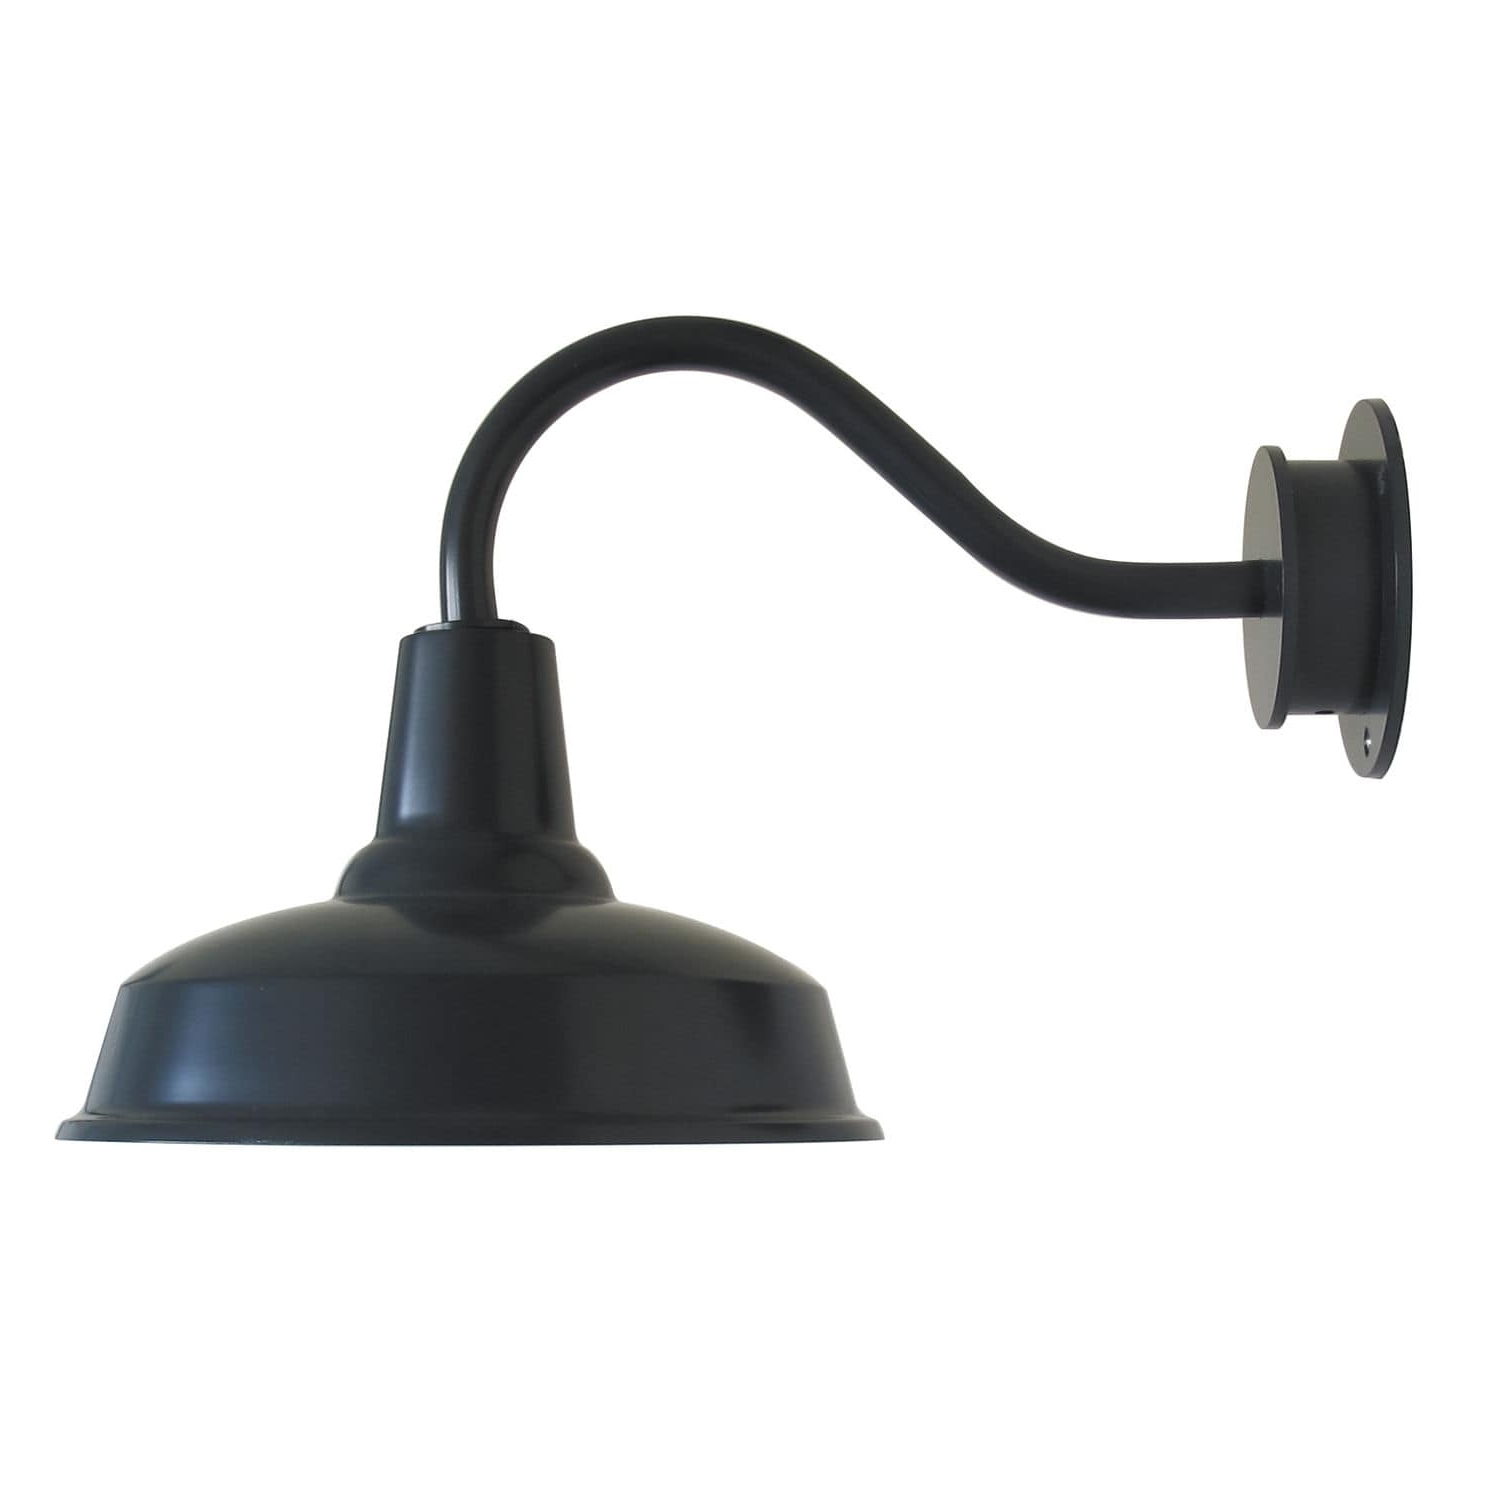 Well Known Industrial Outdoor Wall Lighting Regarding Industrial Style Wall Light / Outdoor / Metal / Led – Picco Barn (View 20 of 20)